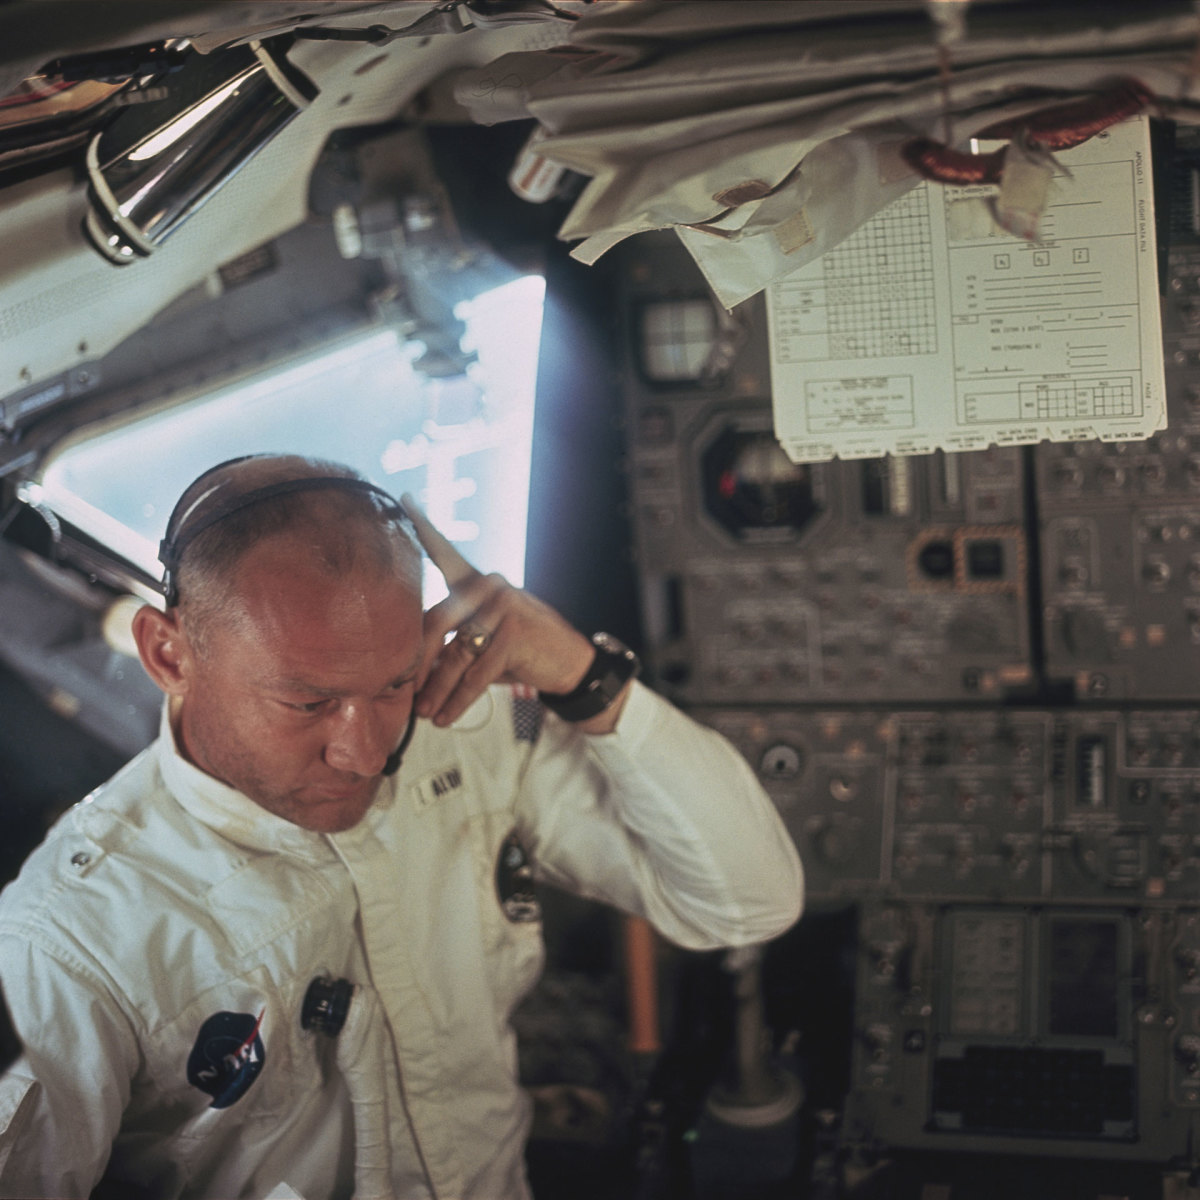 Lunar Module pilot Buzz Aldrin on the spaceflight Apollo 11 in July 1969.